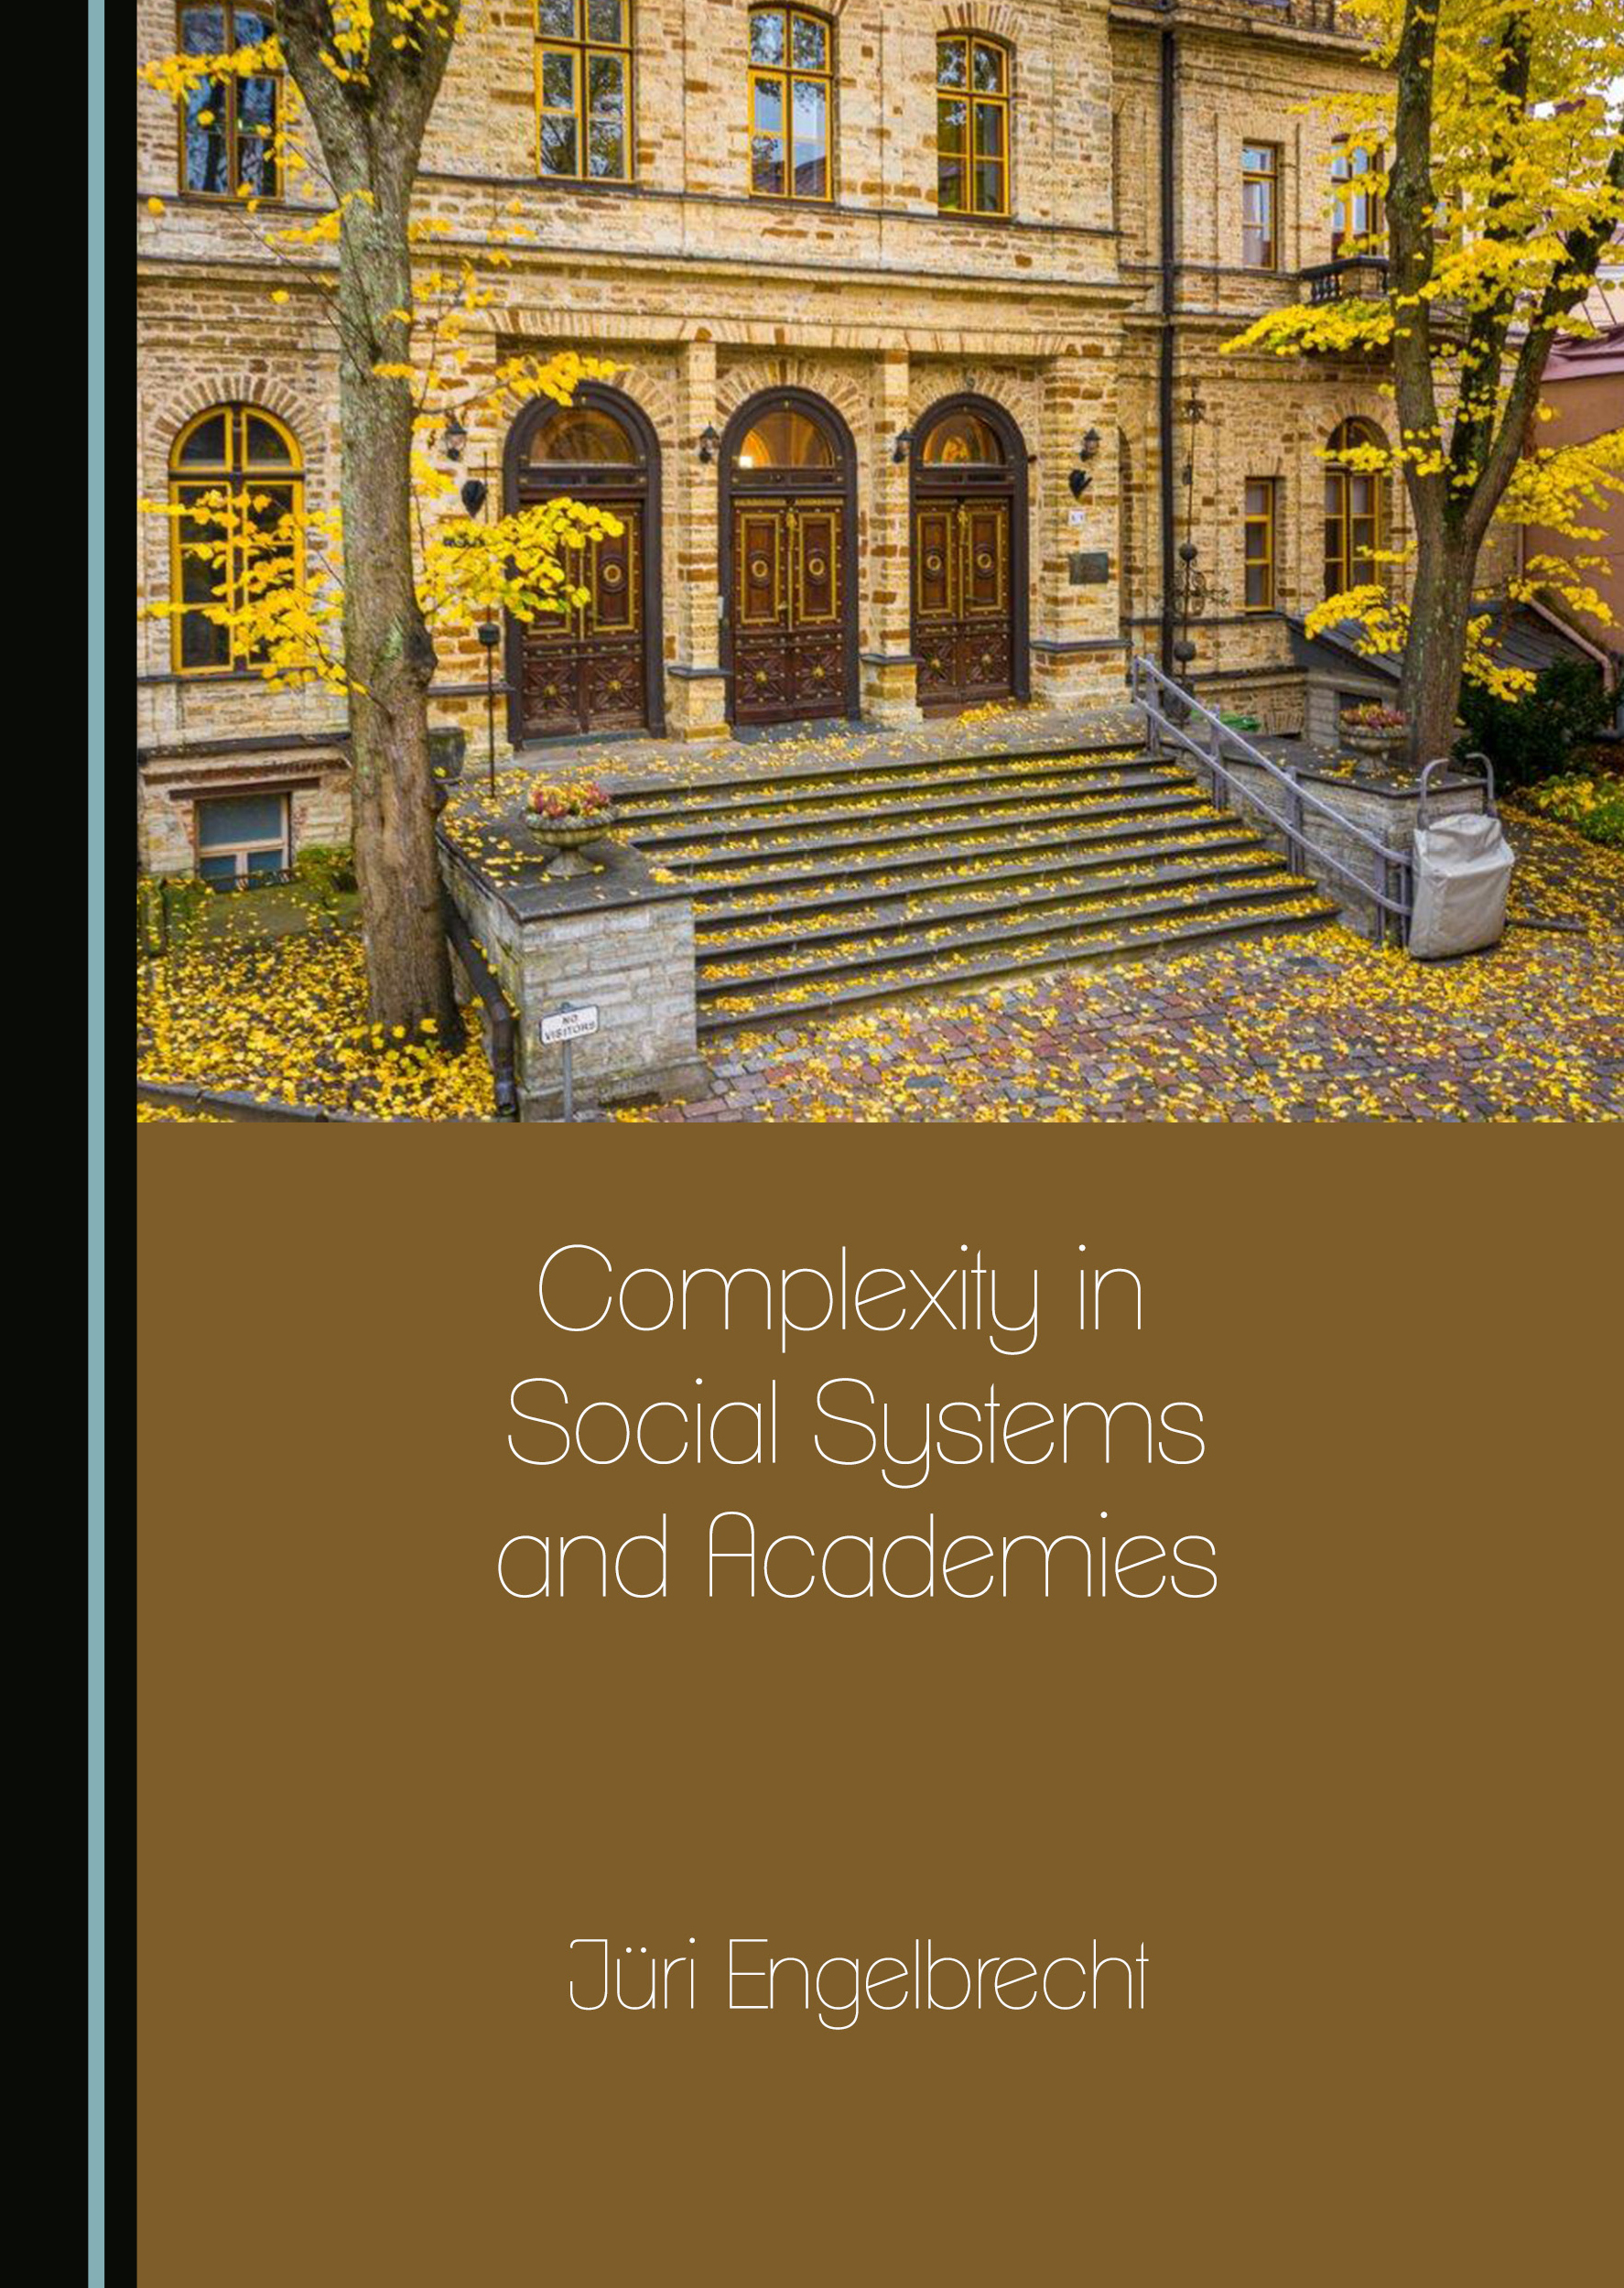 Complexity in Social Systems and Academies